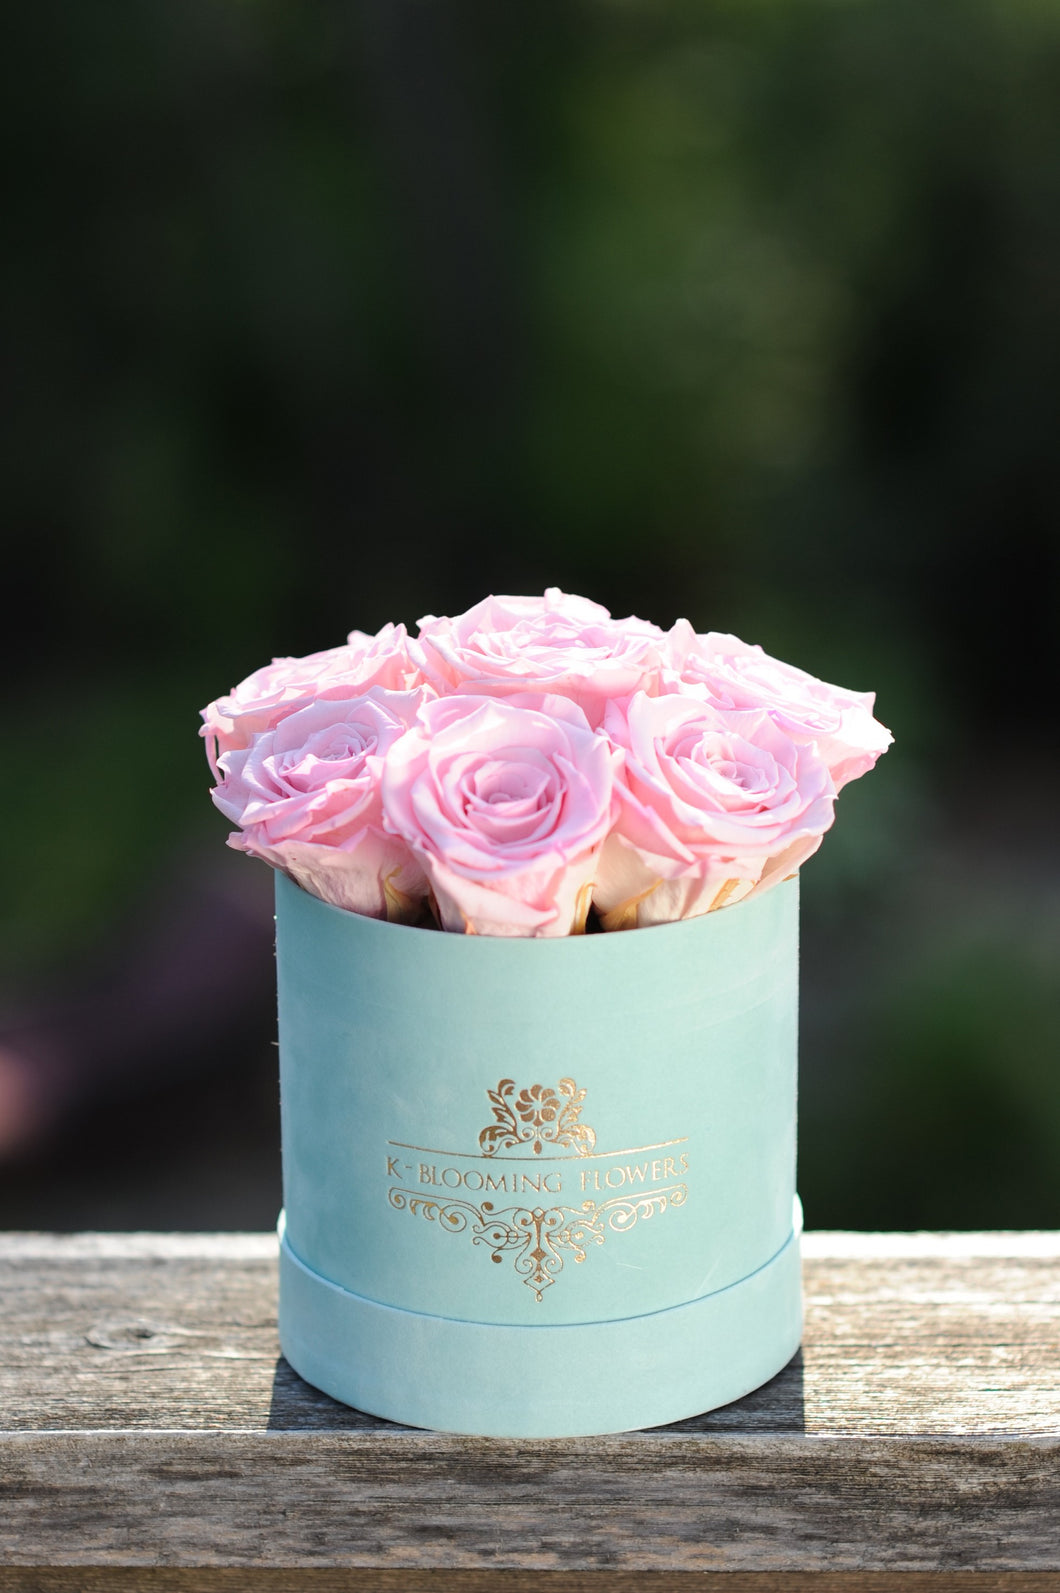 Pink Real Roses That Last A Year in a Signature Velvet  Box - K-BLOOMING FLOWERS